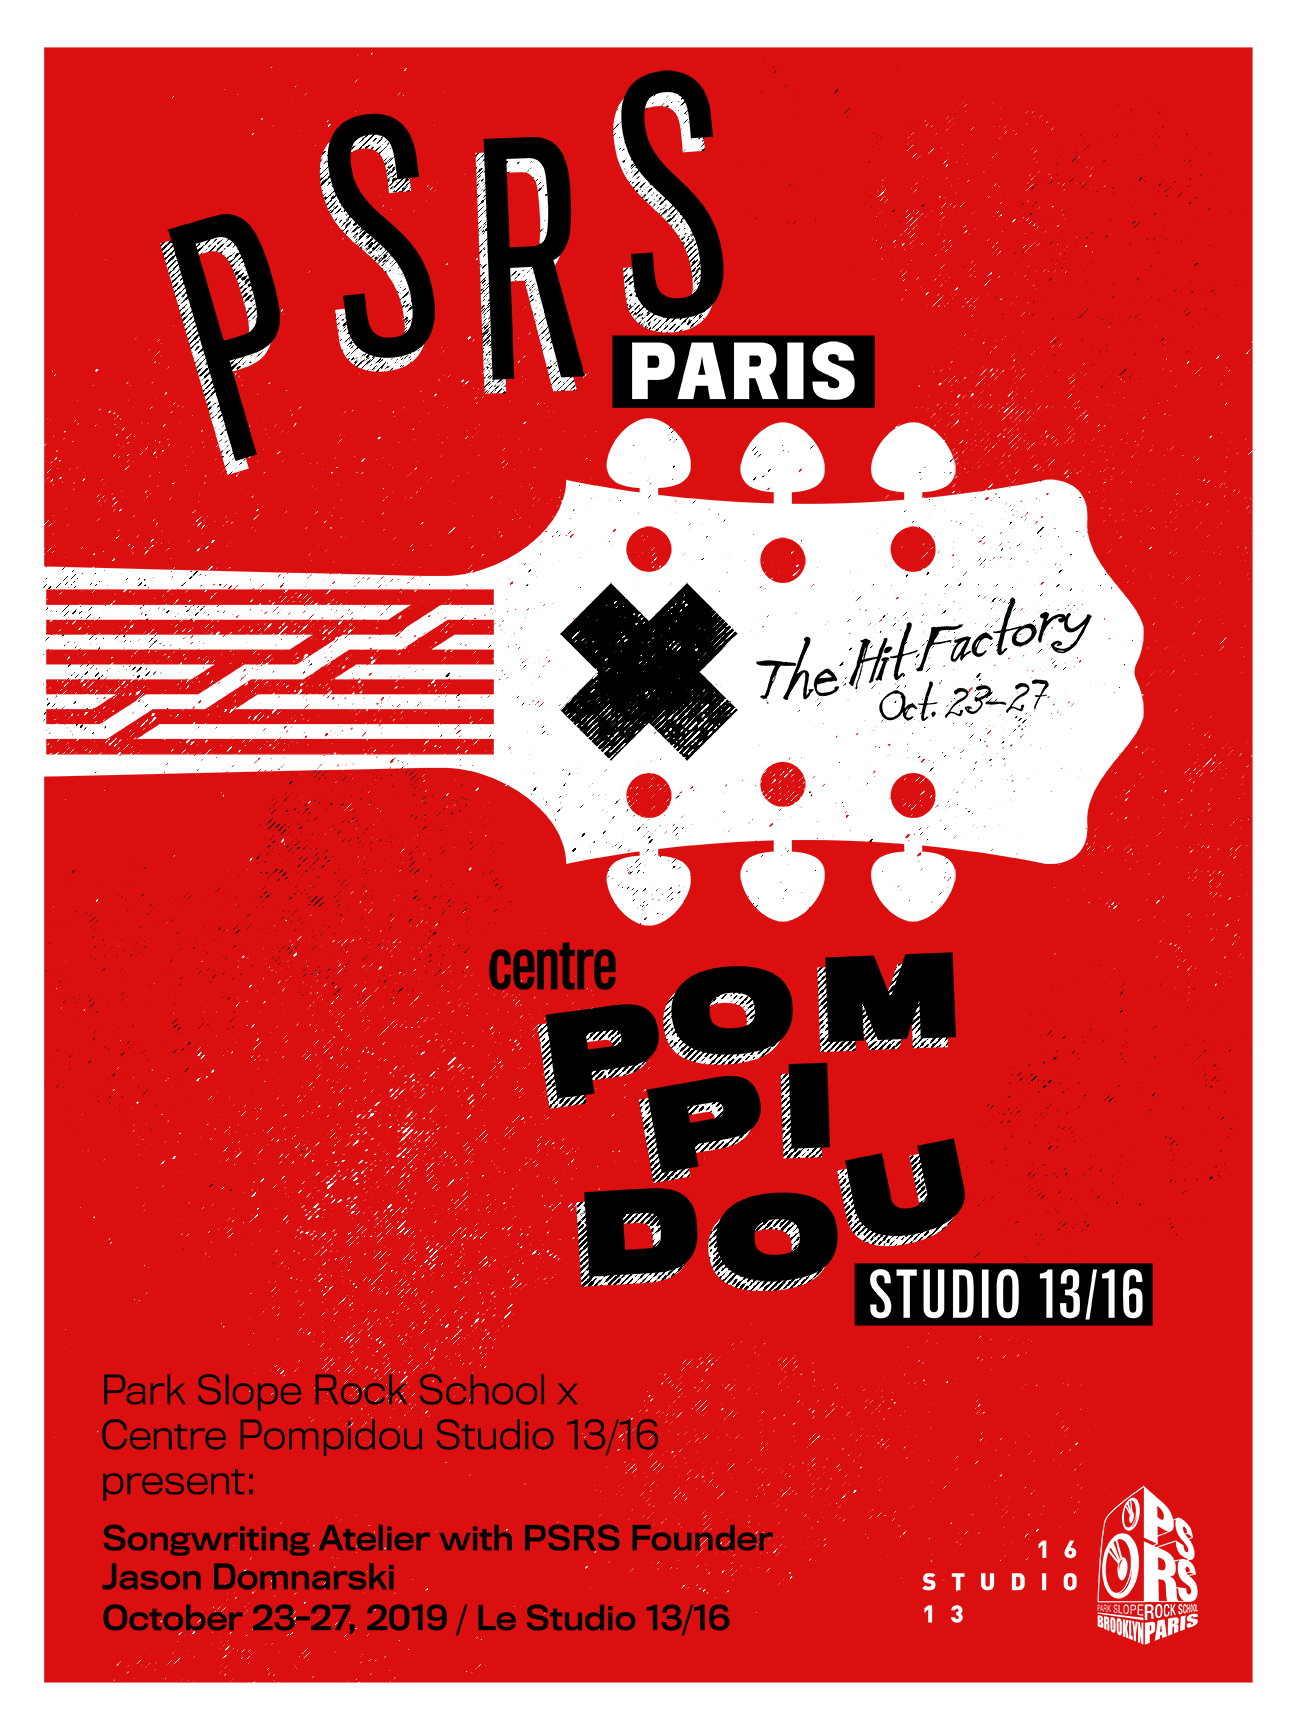 PSRS_Poster2_TheHitFactory_ShareablePoster.png